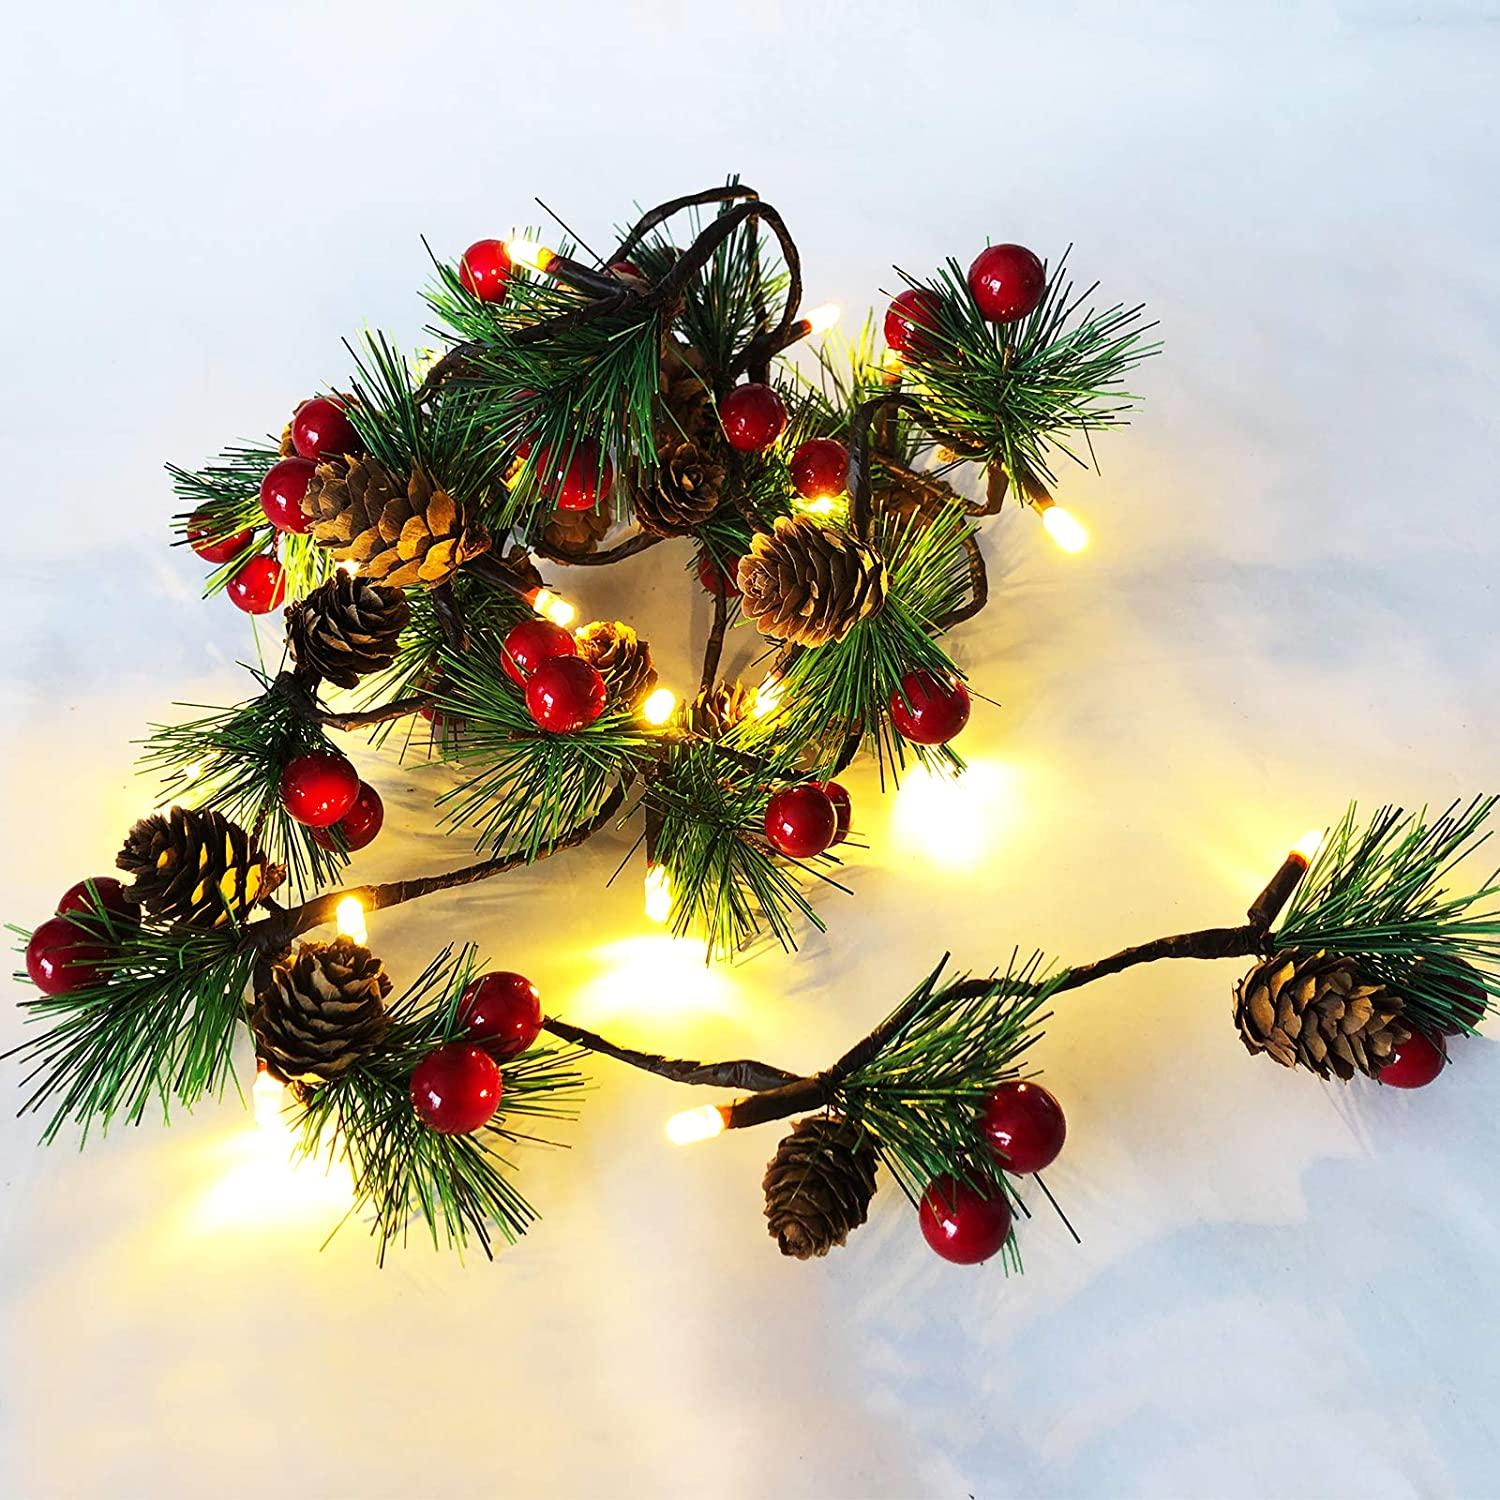 HamiFinee Christmas Garland Lights 6.56FT Holiday Prelit Garland Pine Cone Garland Light with Red Berry Upgraded Battery Operated Garland with LED Lights Xmas Decor Lights for Otdoor Indoor Christmas